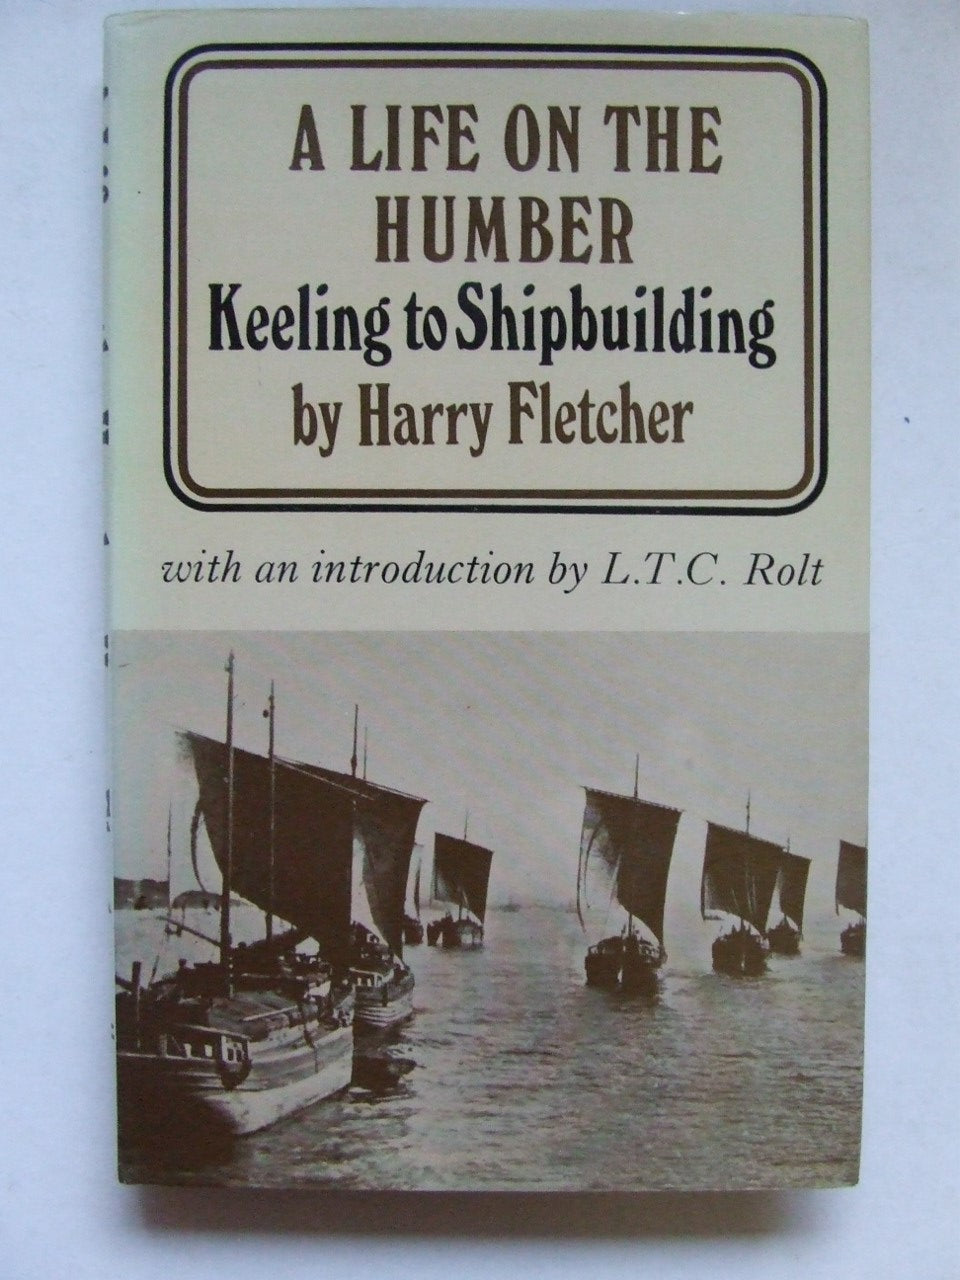 Life on the Humber,  keeling to shipbuilding